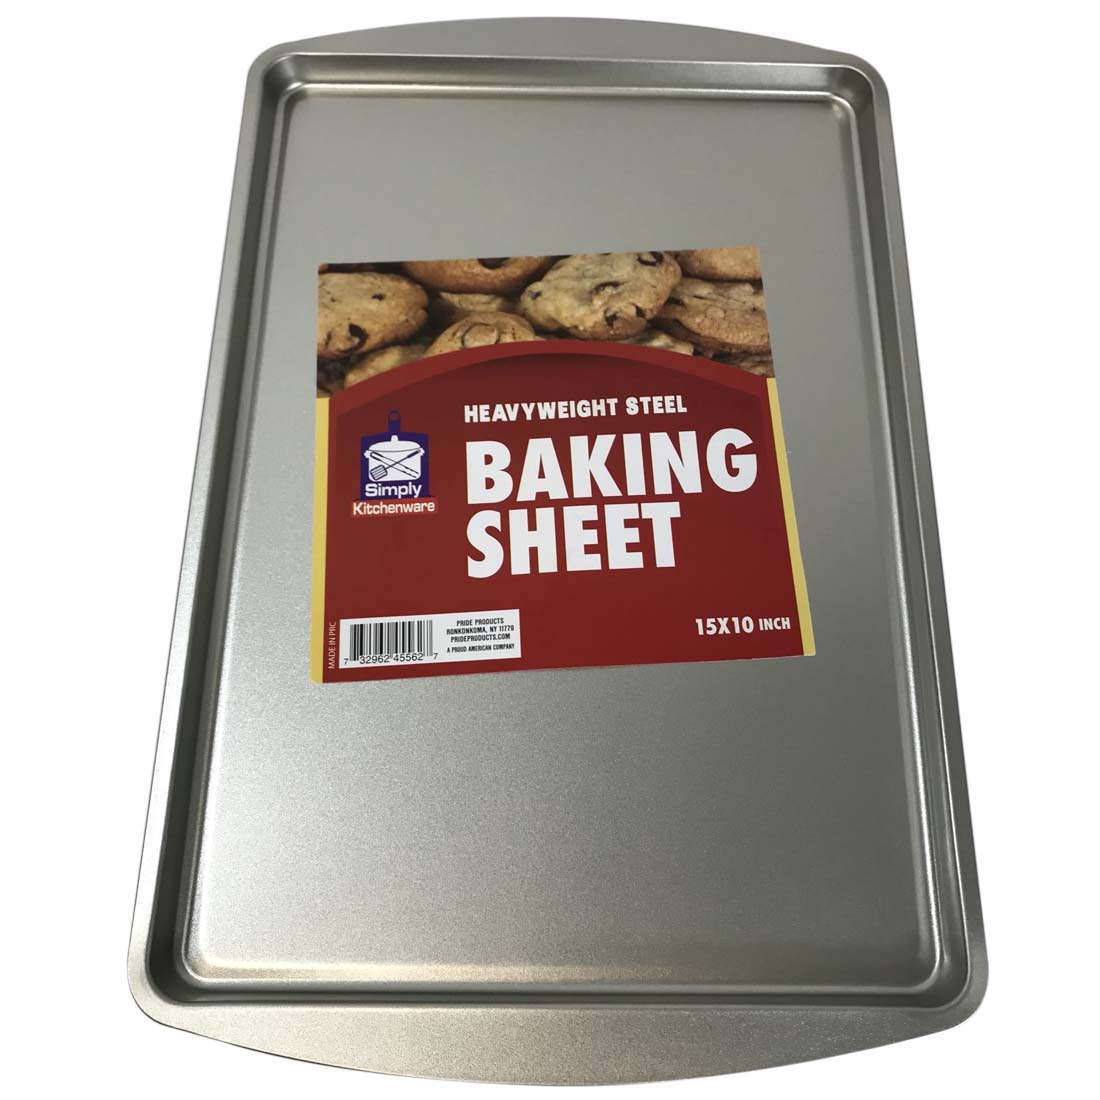 View COOKIE PAN 15 X 10 INCHES RECTANGULAR METAL